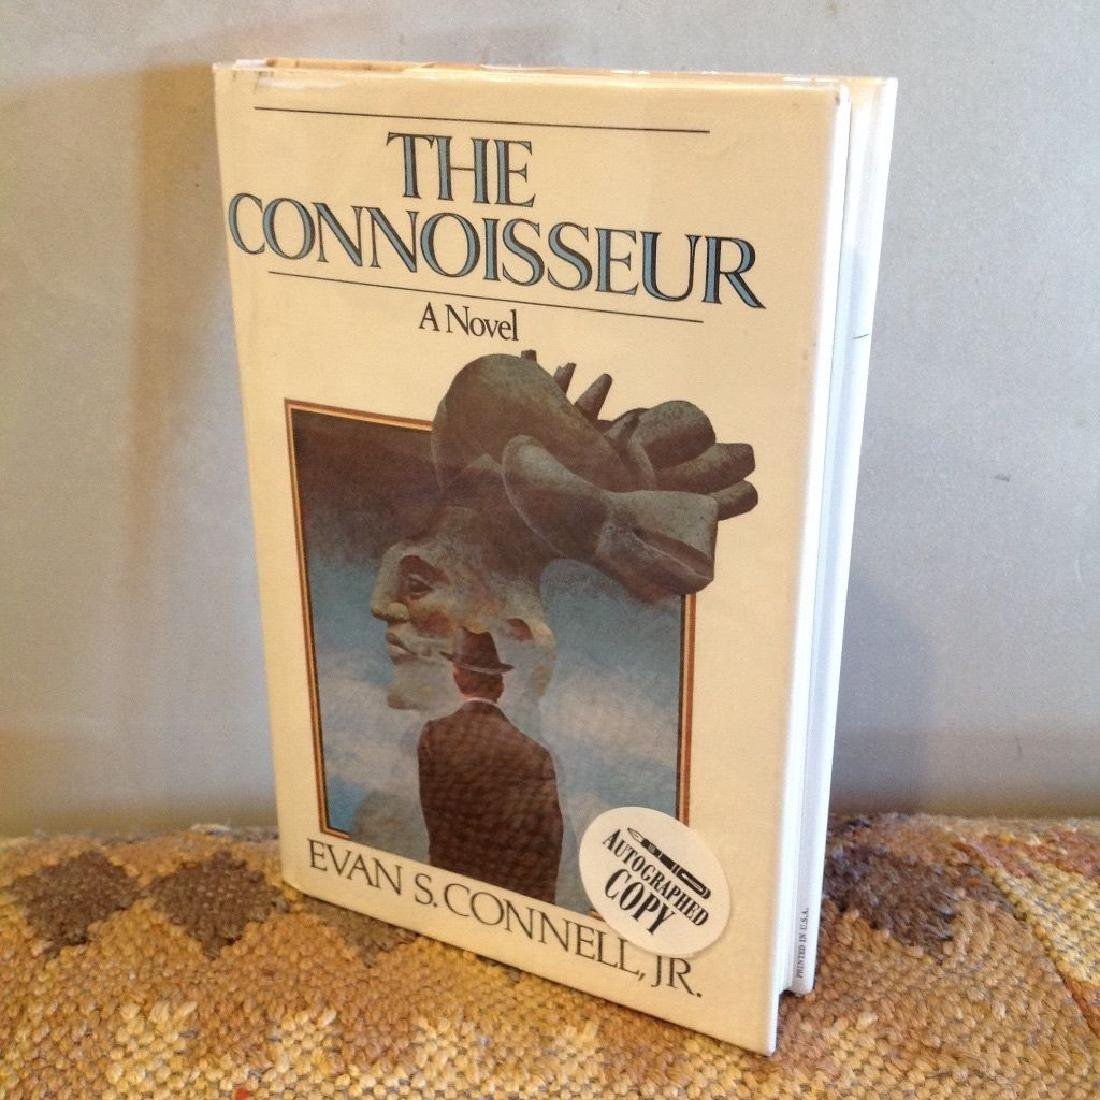 The Connoisseur by Evan S. Connell Autographed